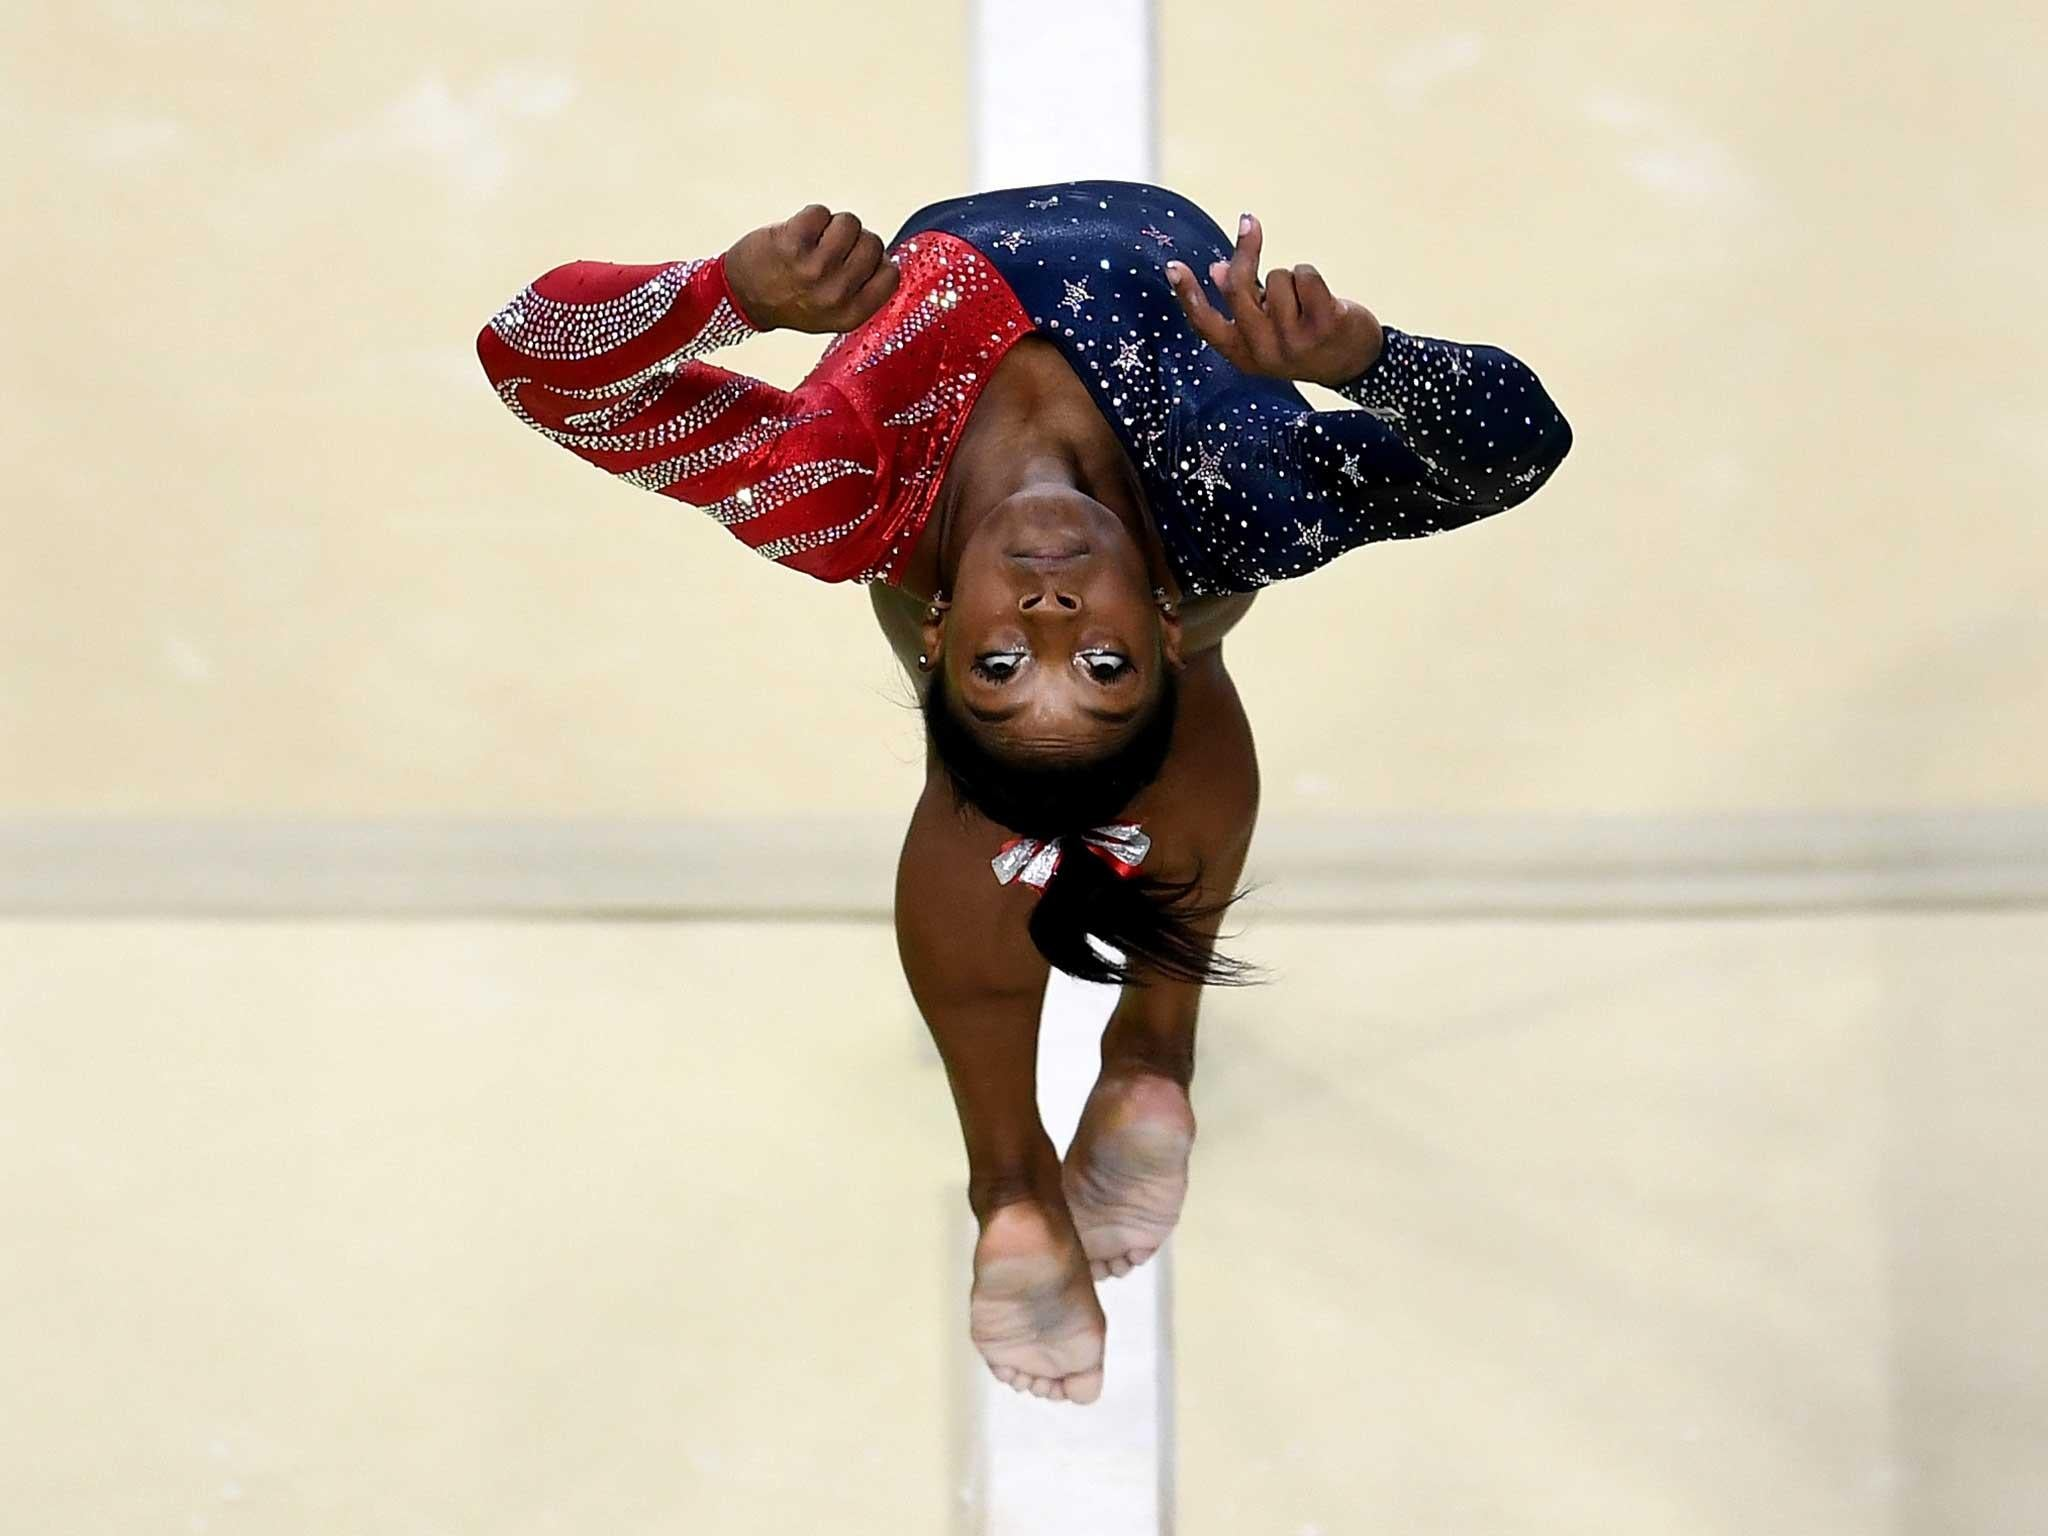 Simone Biles is now seen by many as one of the USA's best athletes